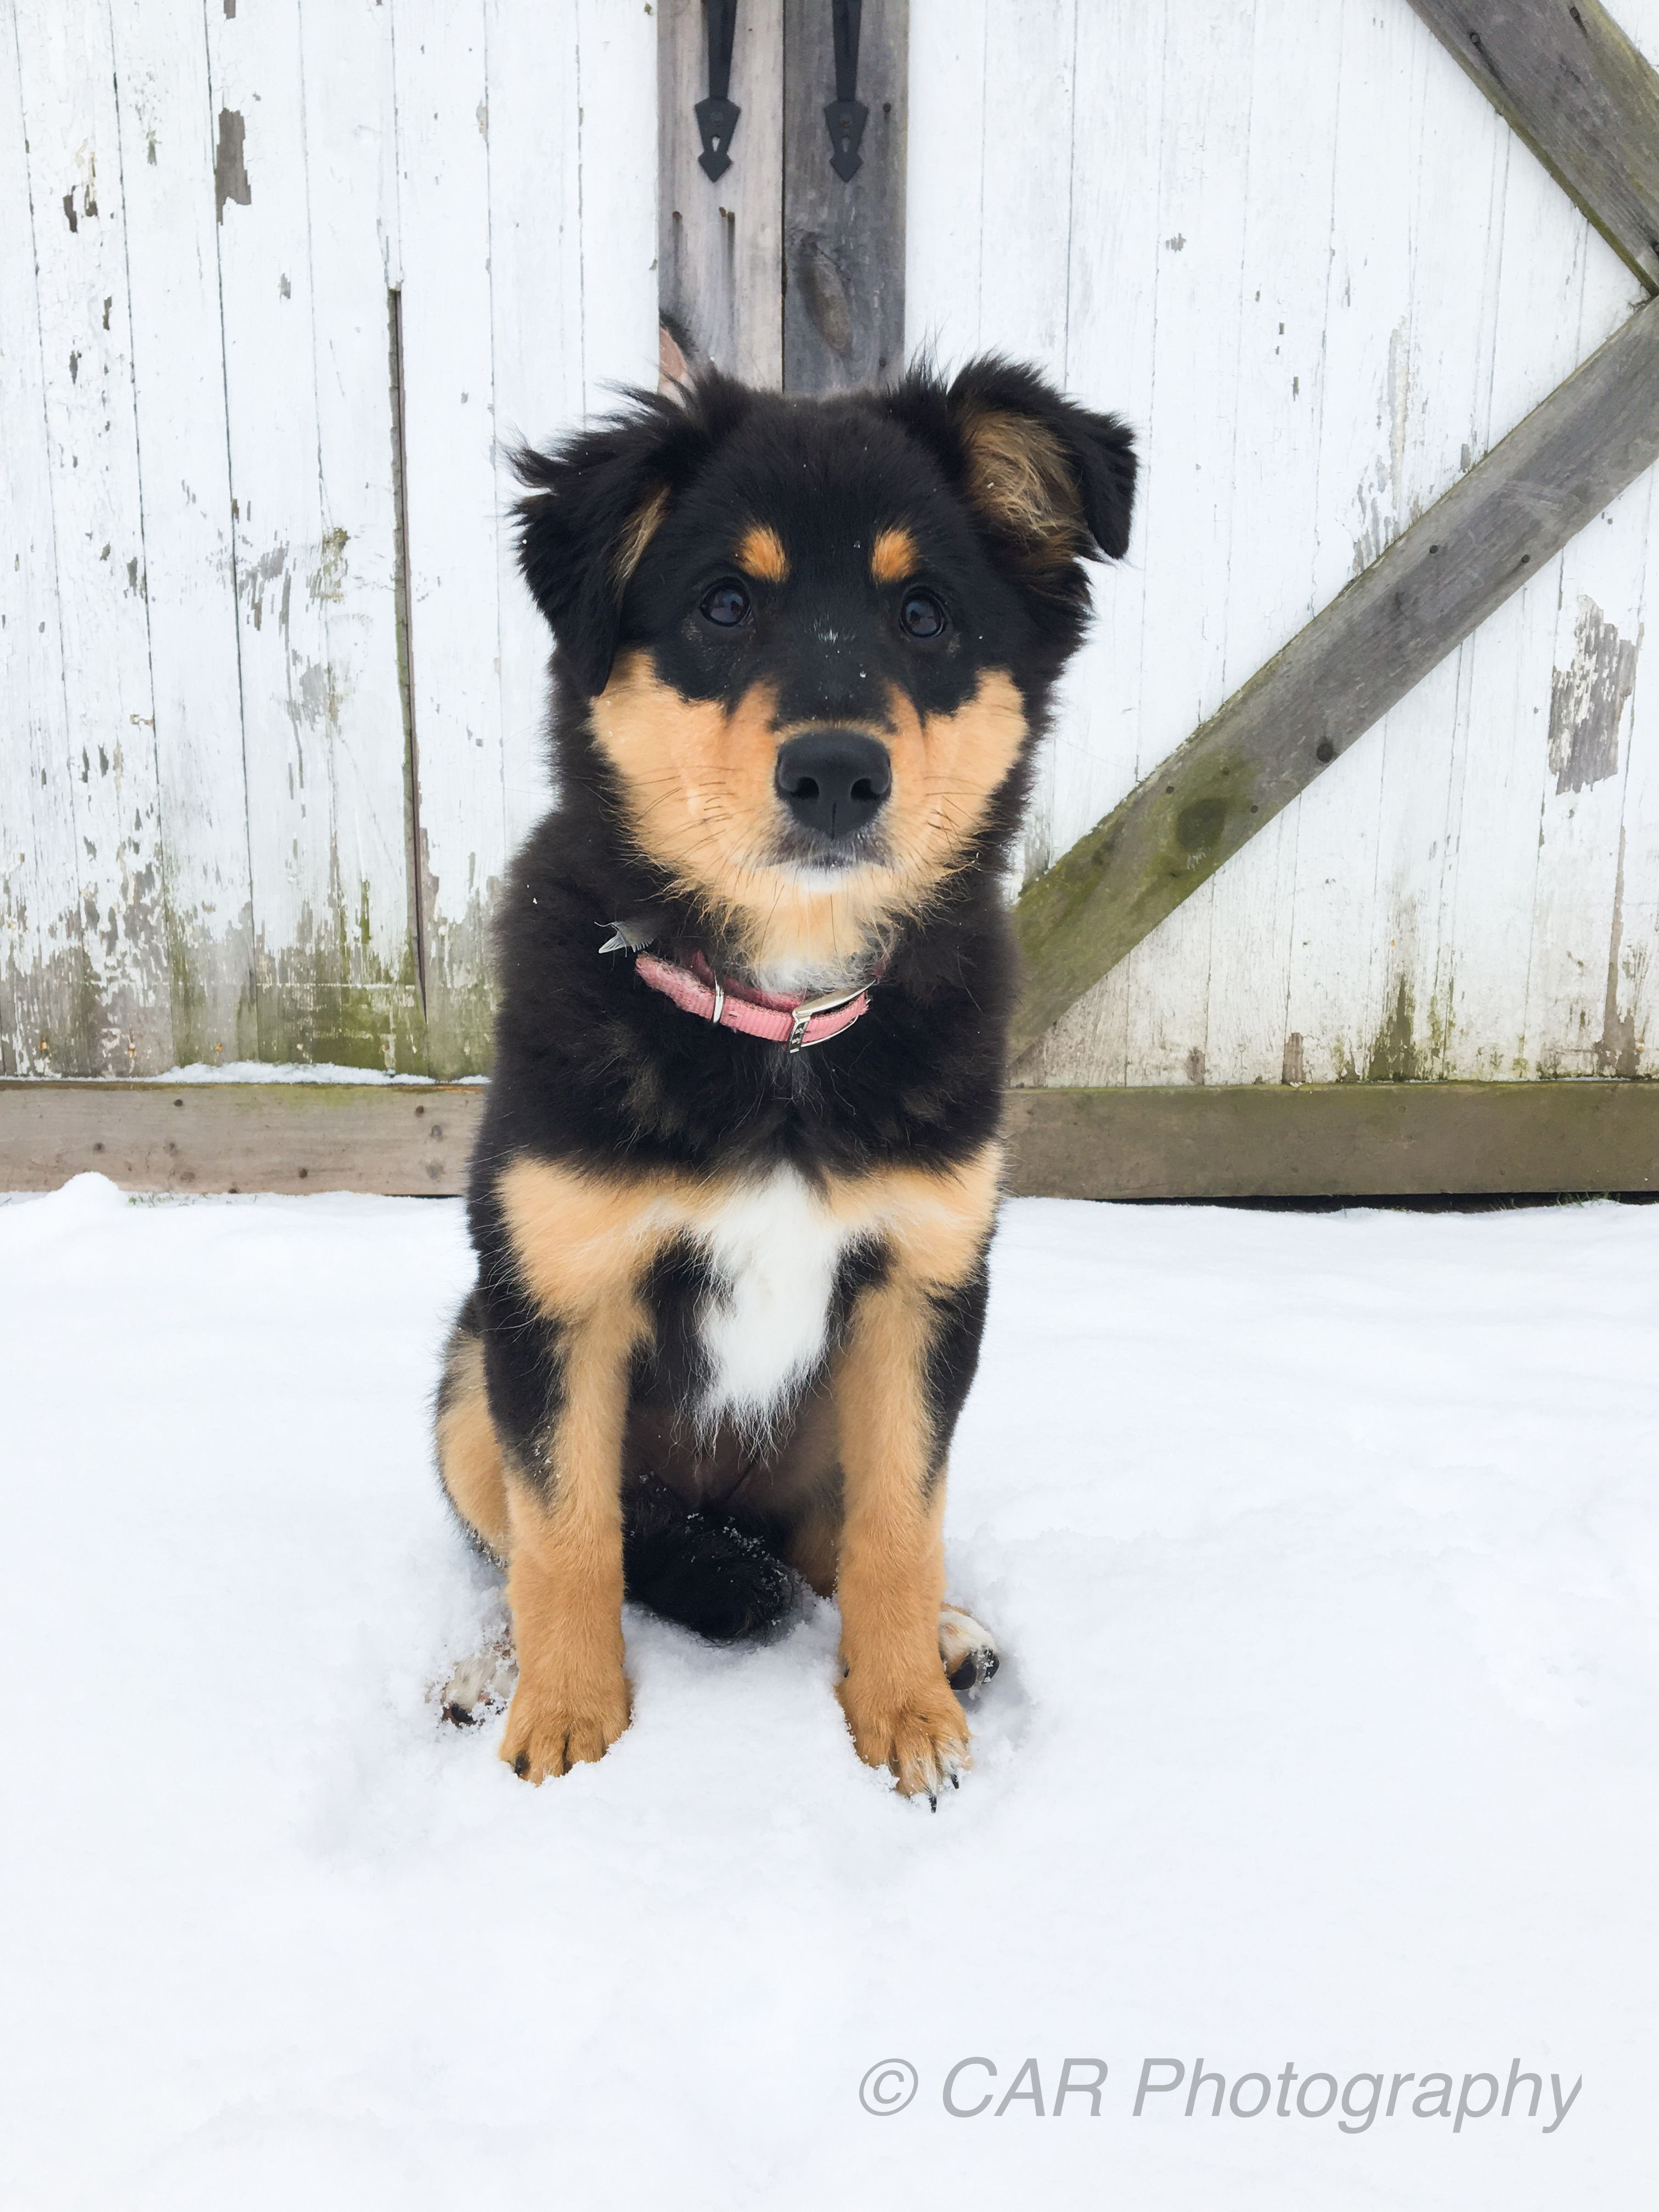 15 Week English Shepherd Border Collie Mix English Shepherd